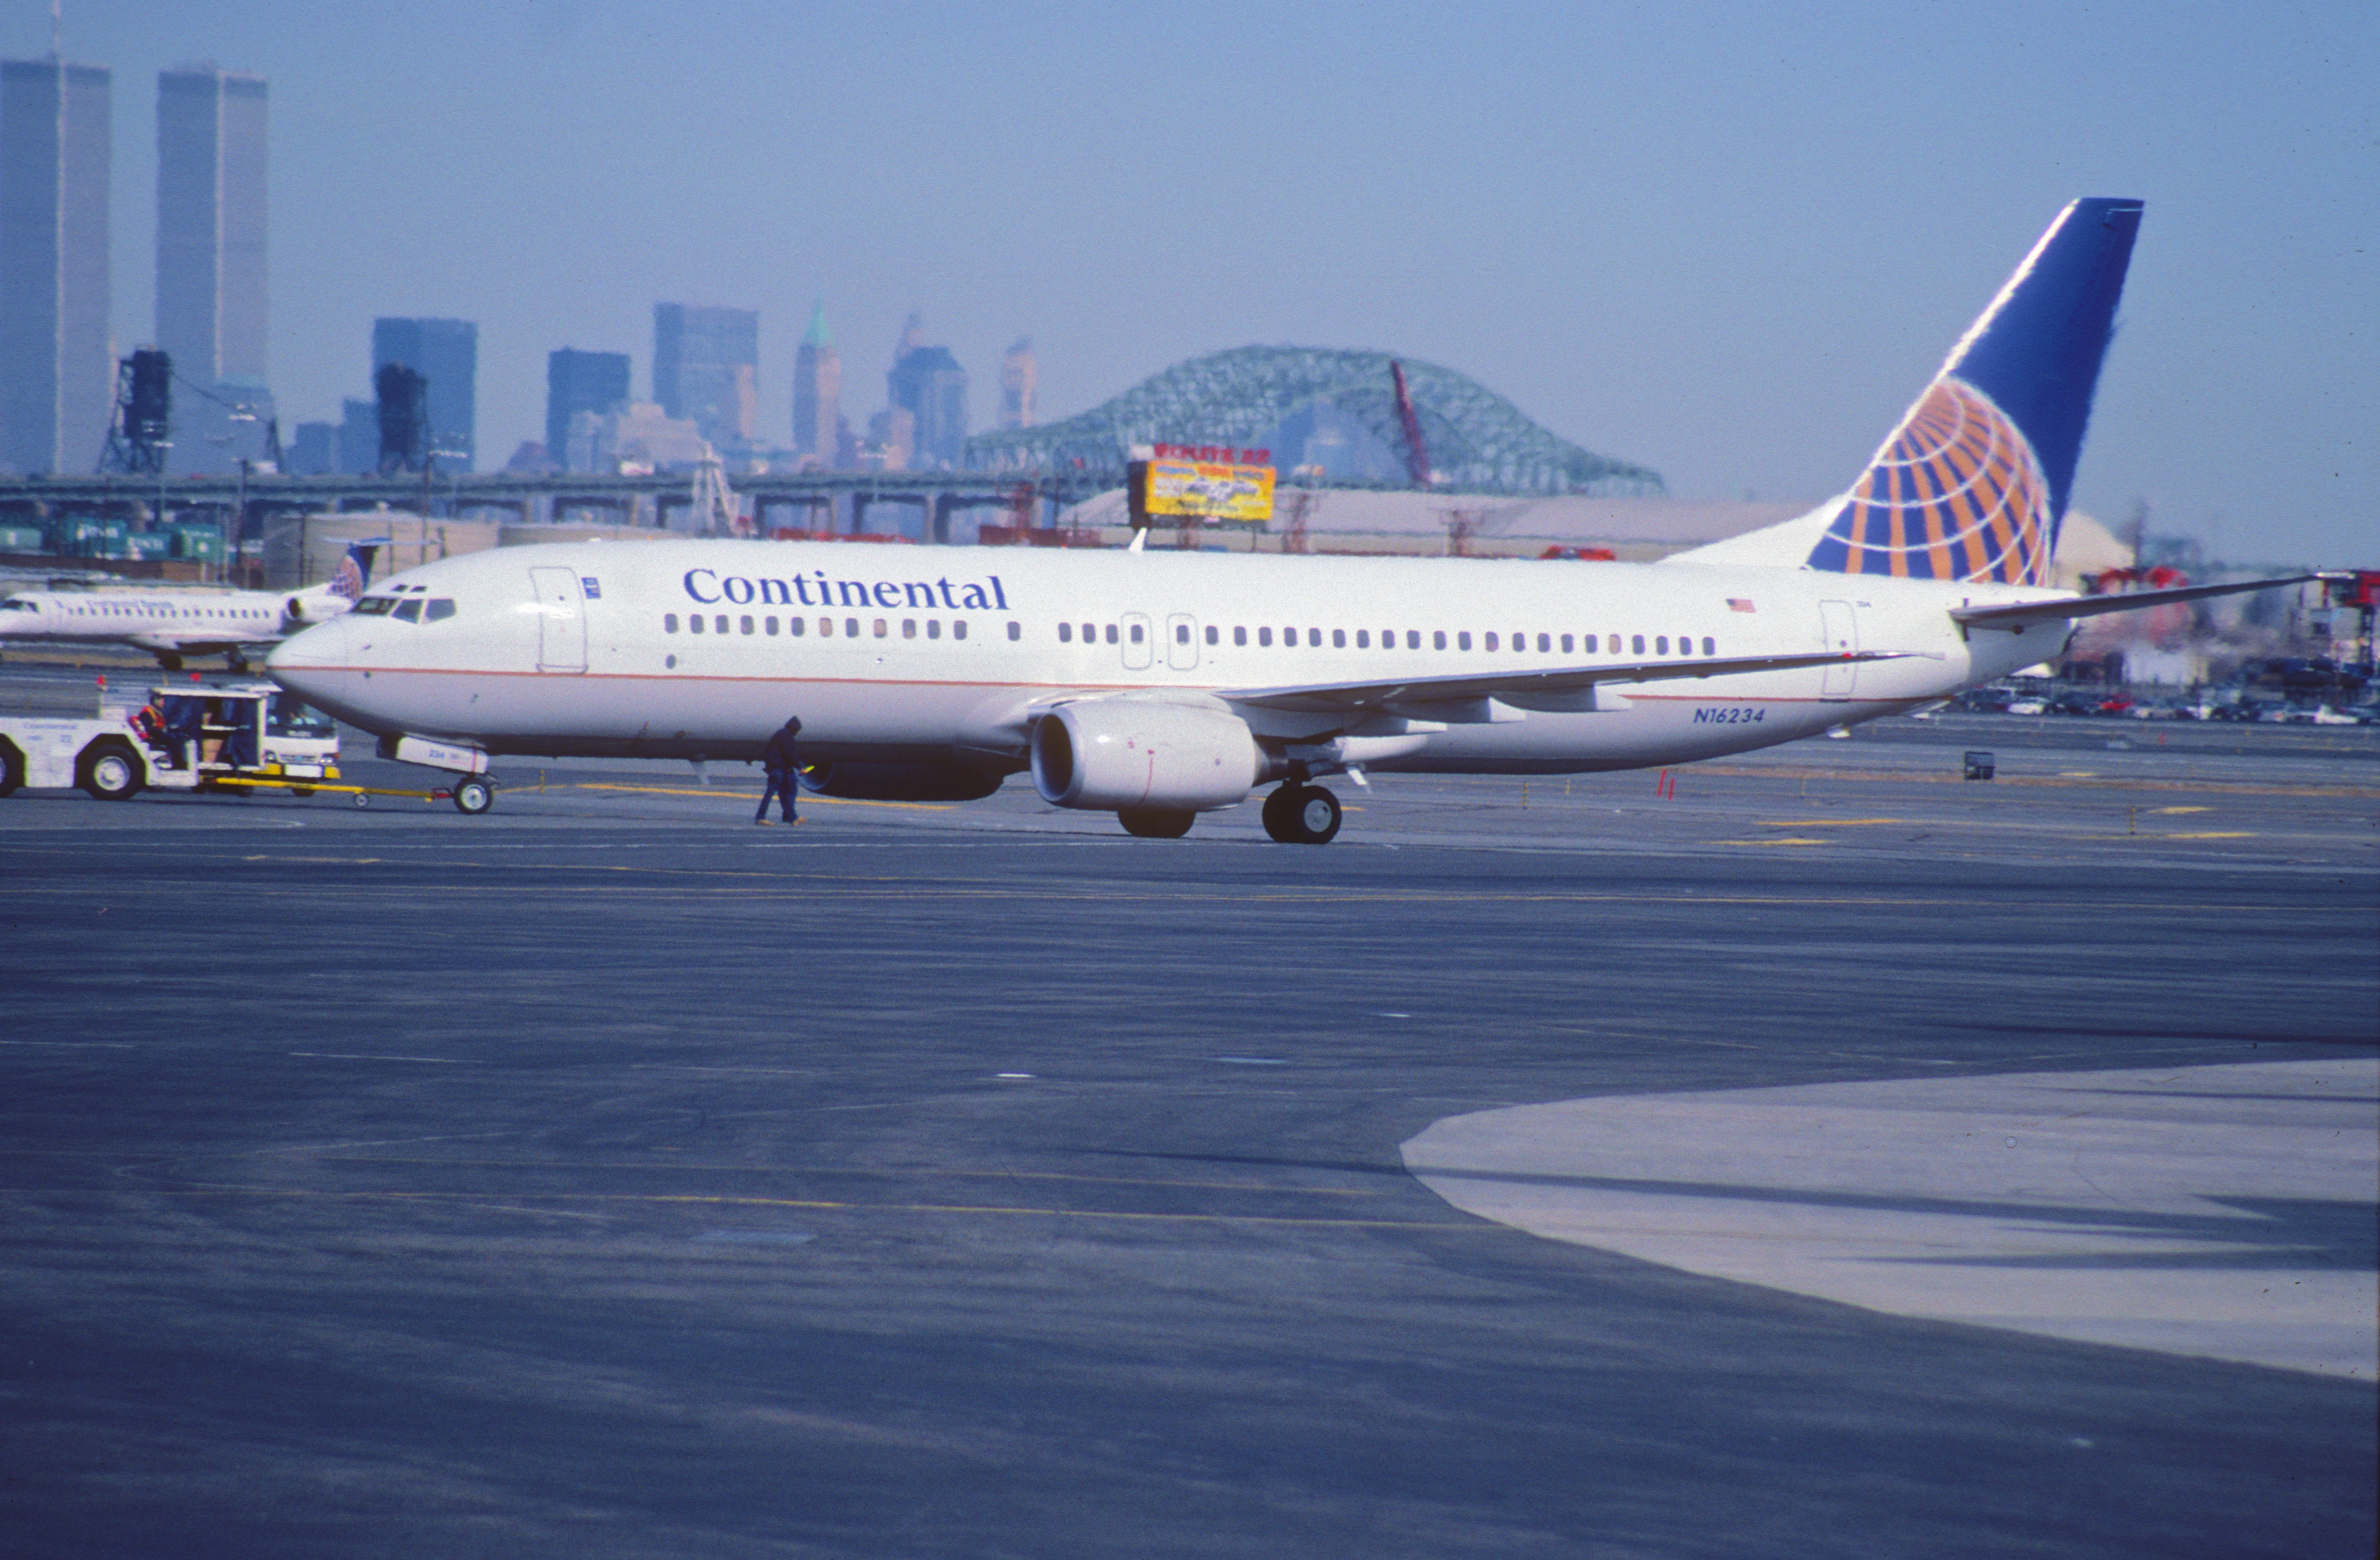 continental airlines careers - HD10842×7107